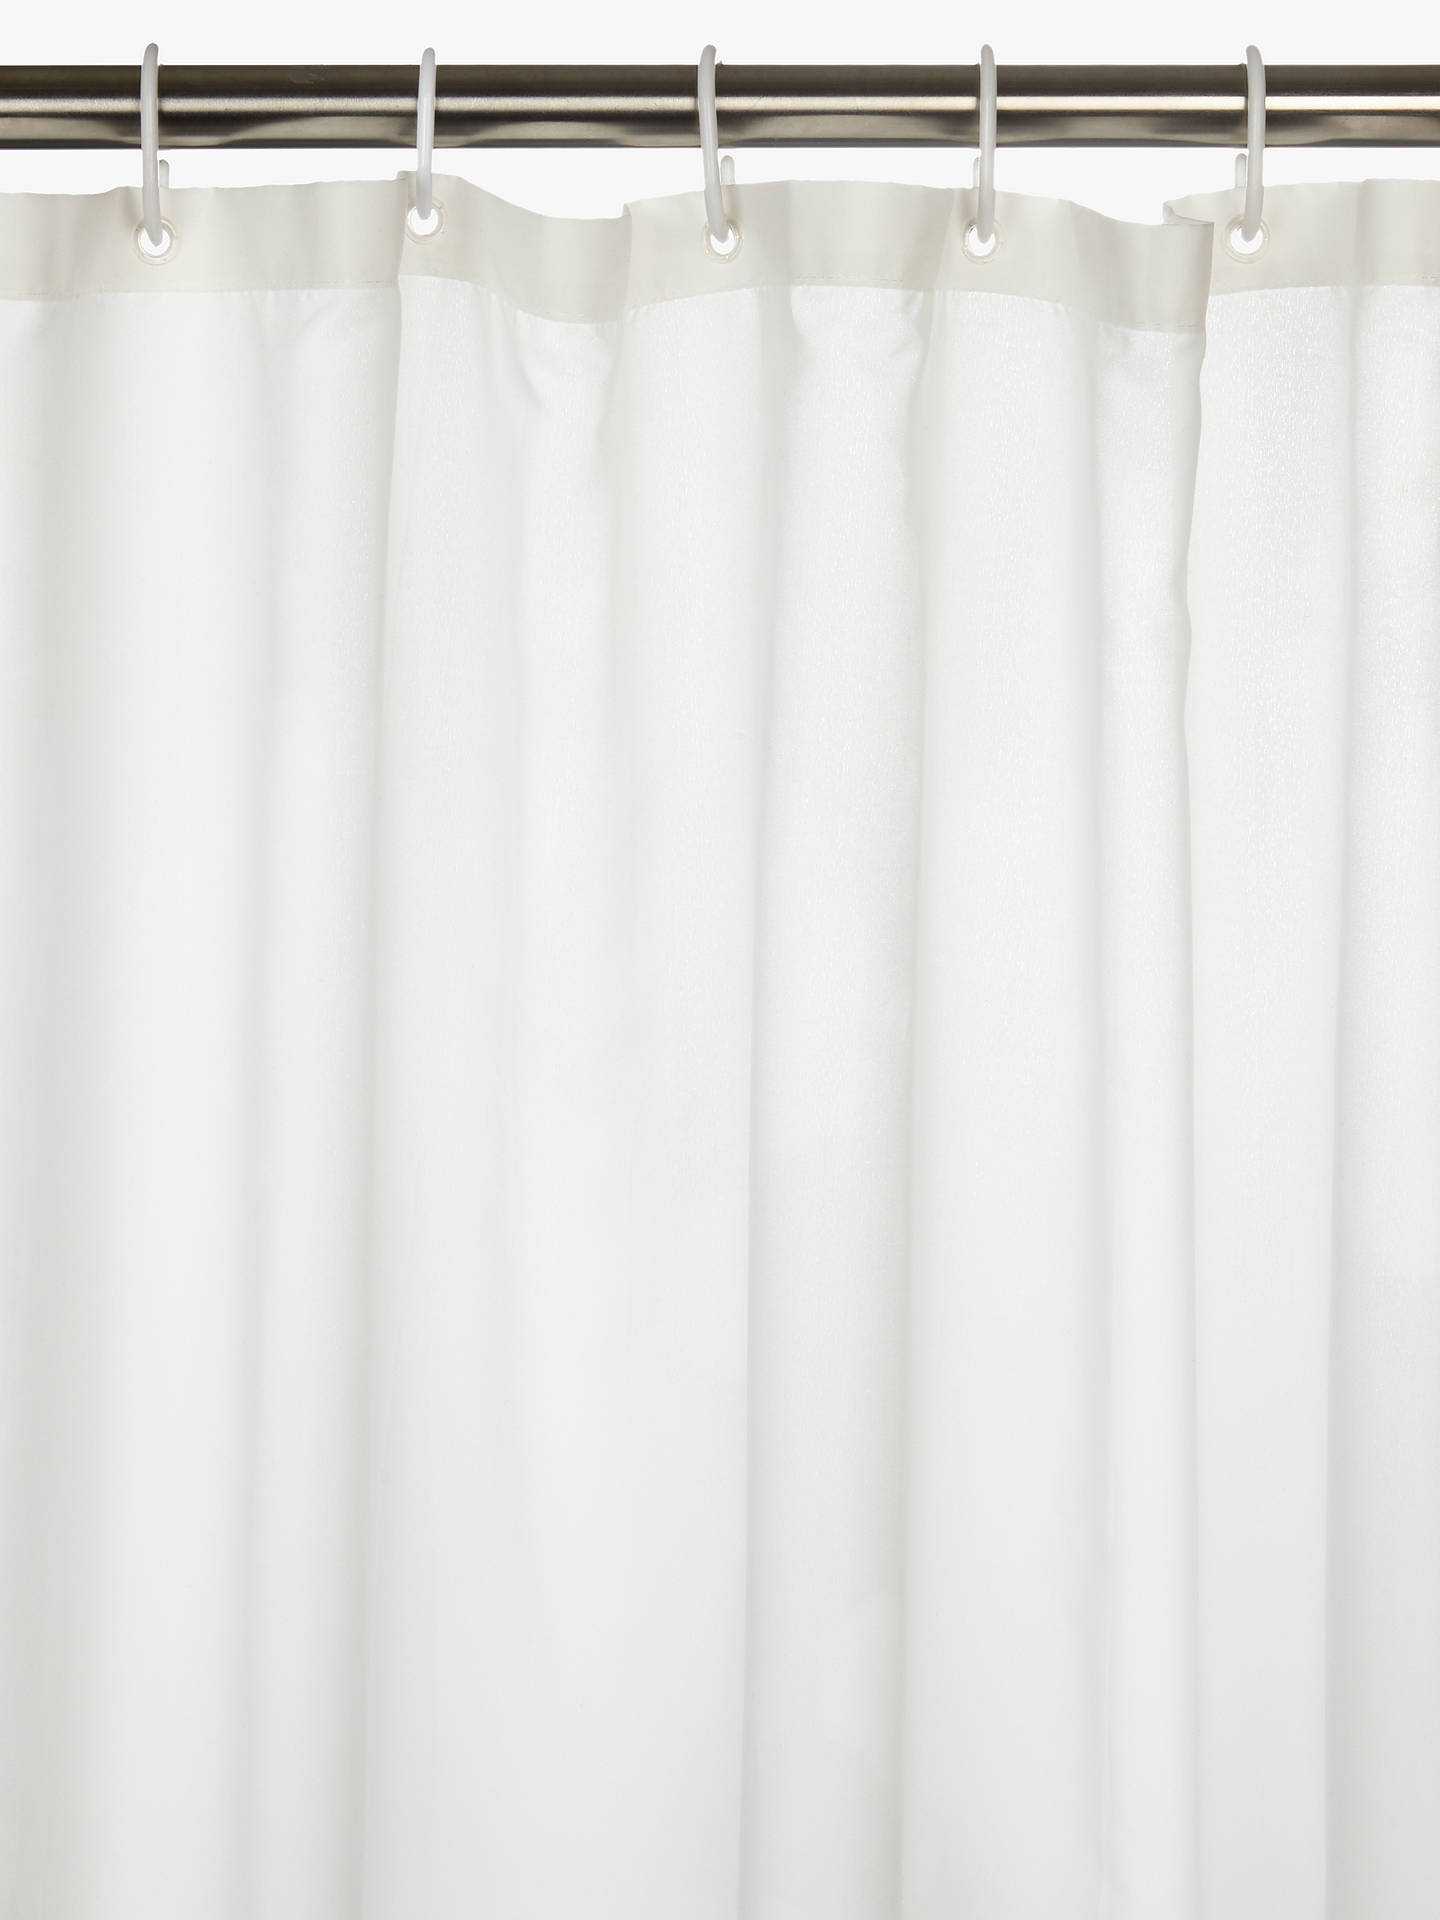 BuyJohn Lewis The Basics Brushed Polyester Shower Curtain Online at johnlewis.com